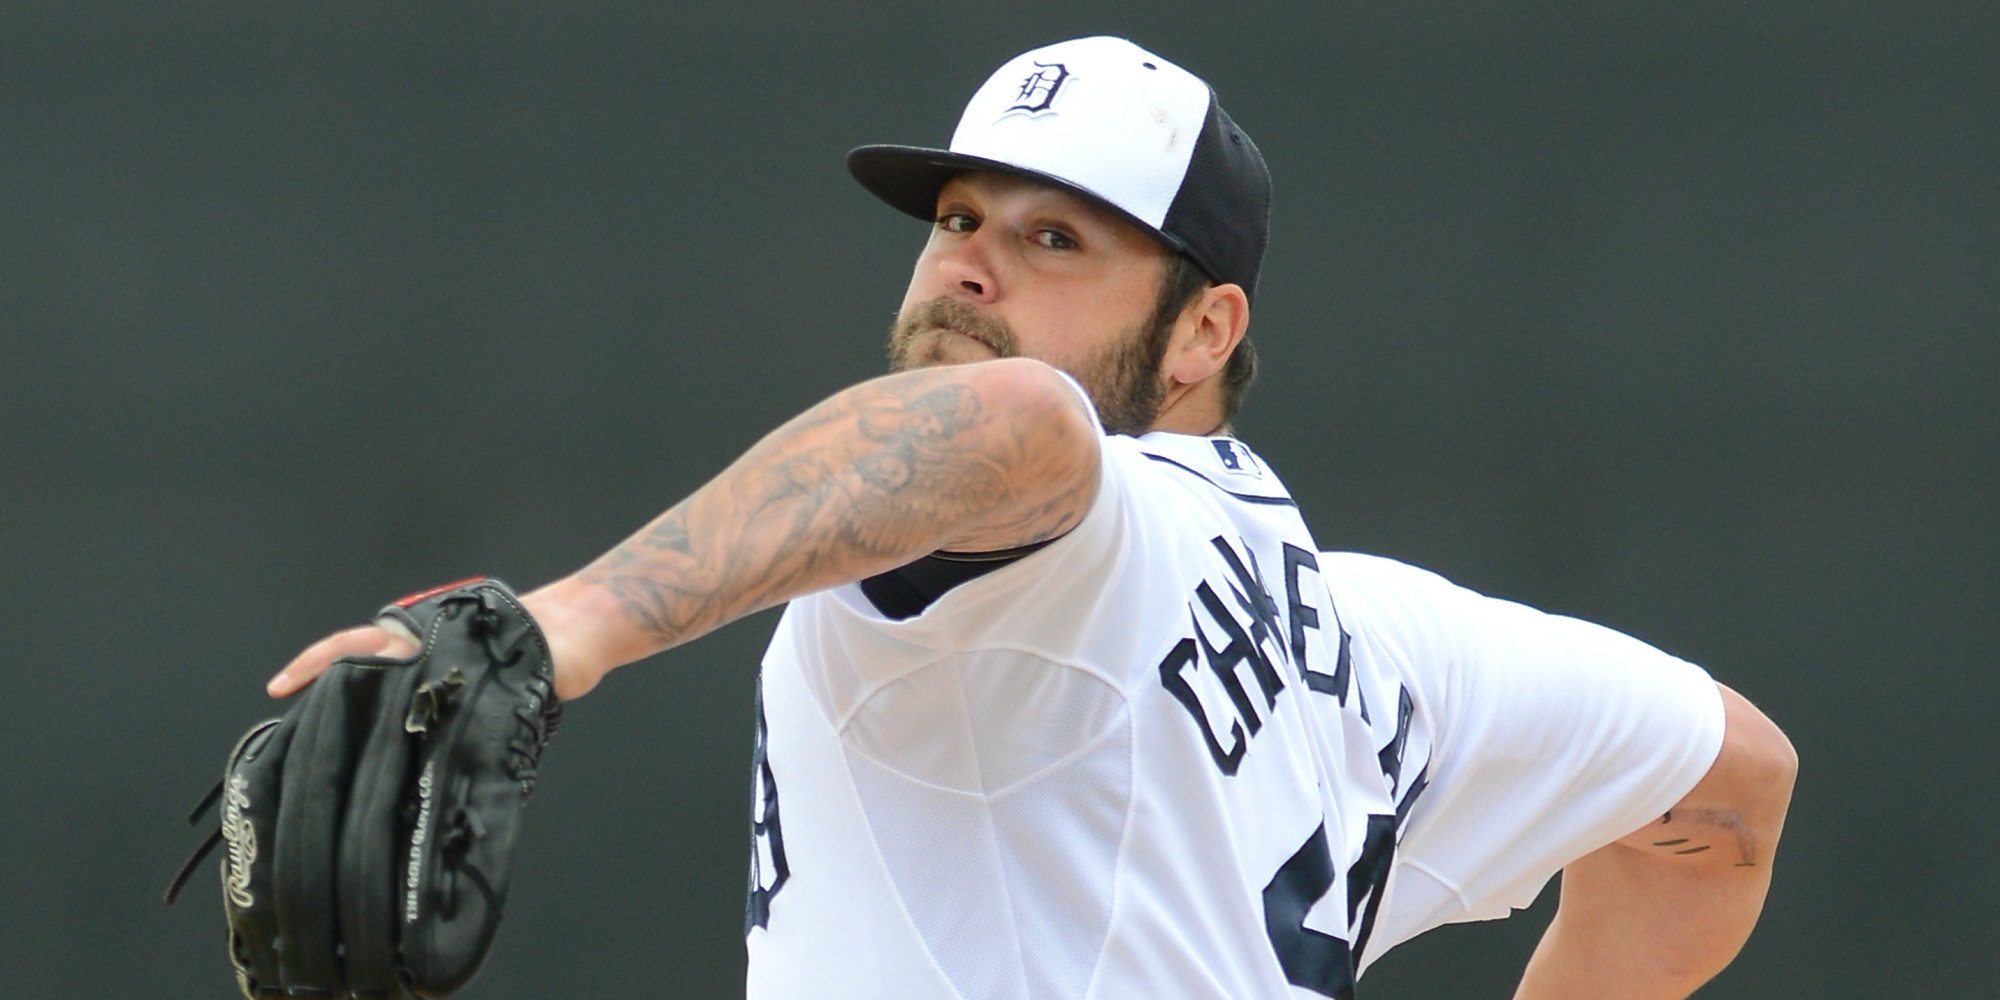 Joba Chamberlain Combined Smiley Face With Tommy John Scar To Make Amazing Tattoo Huffpost